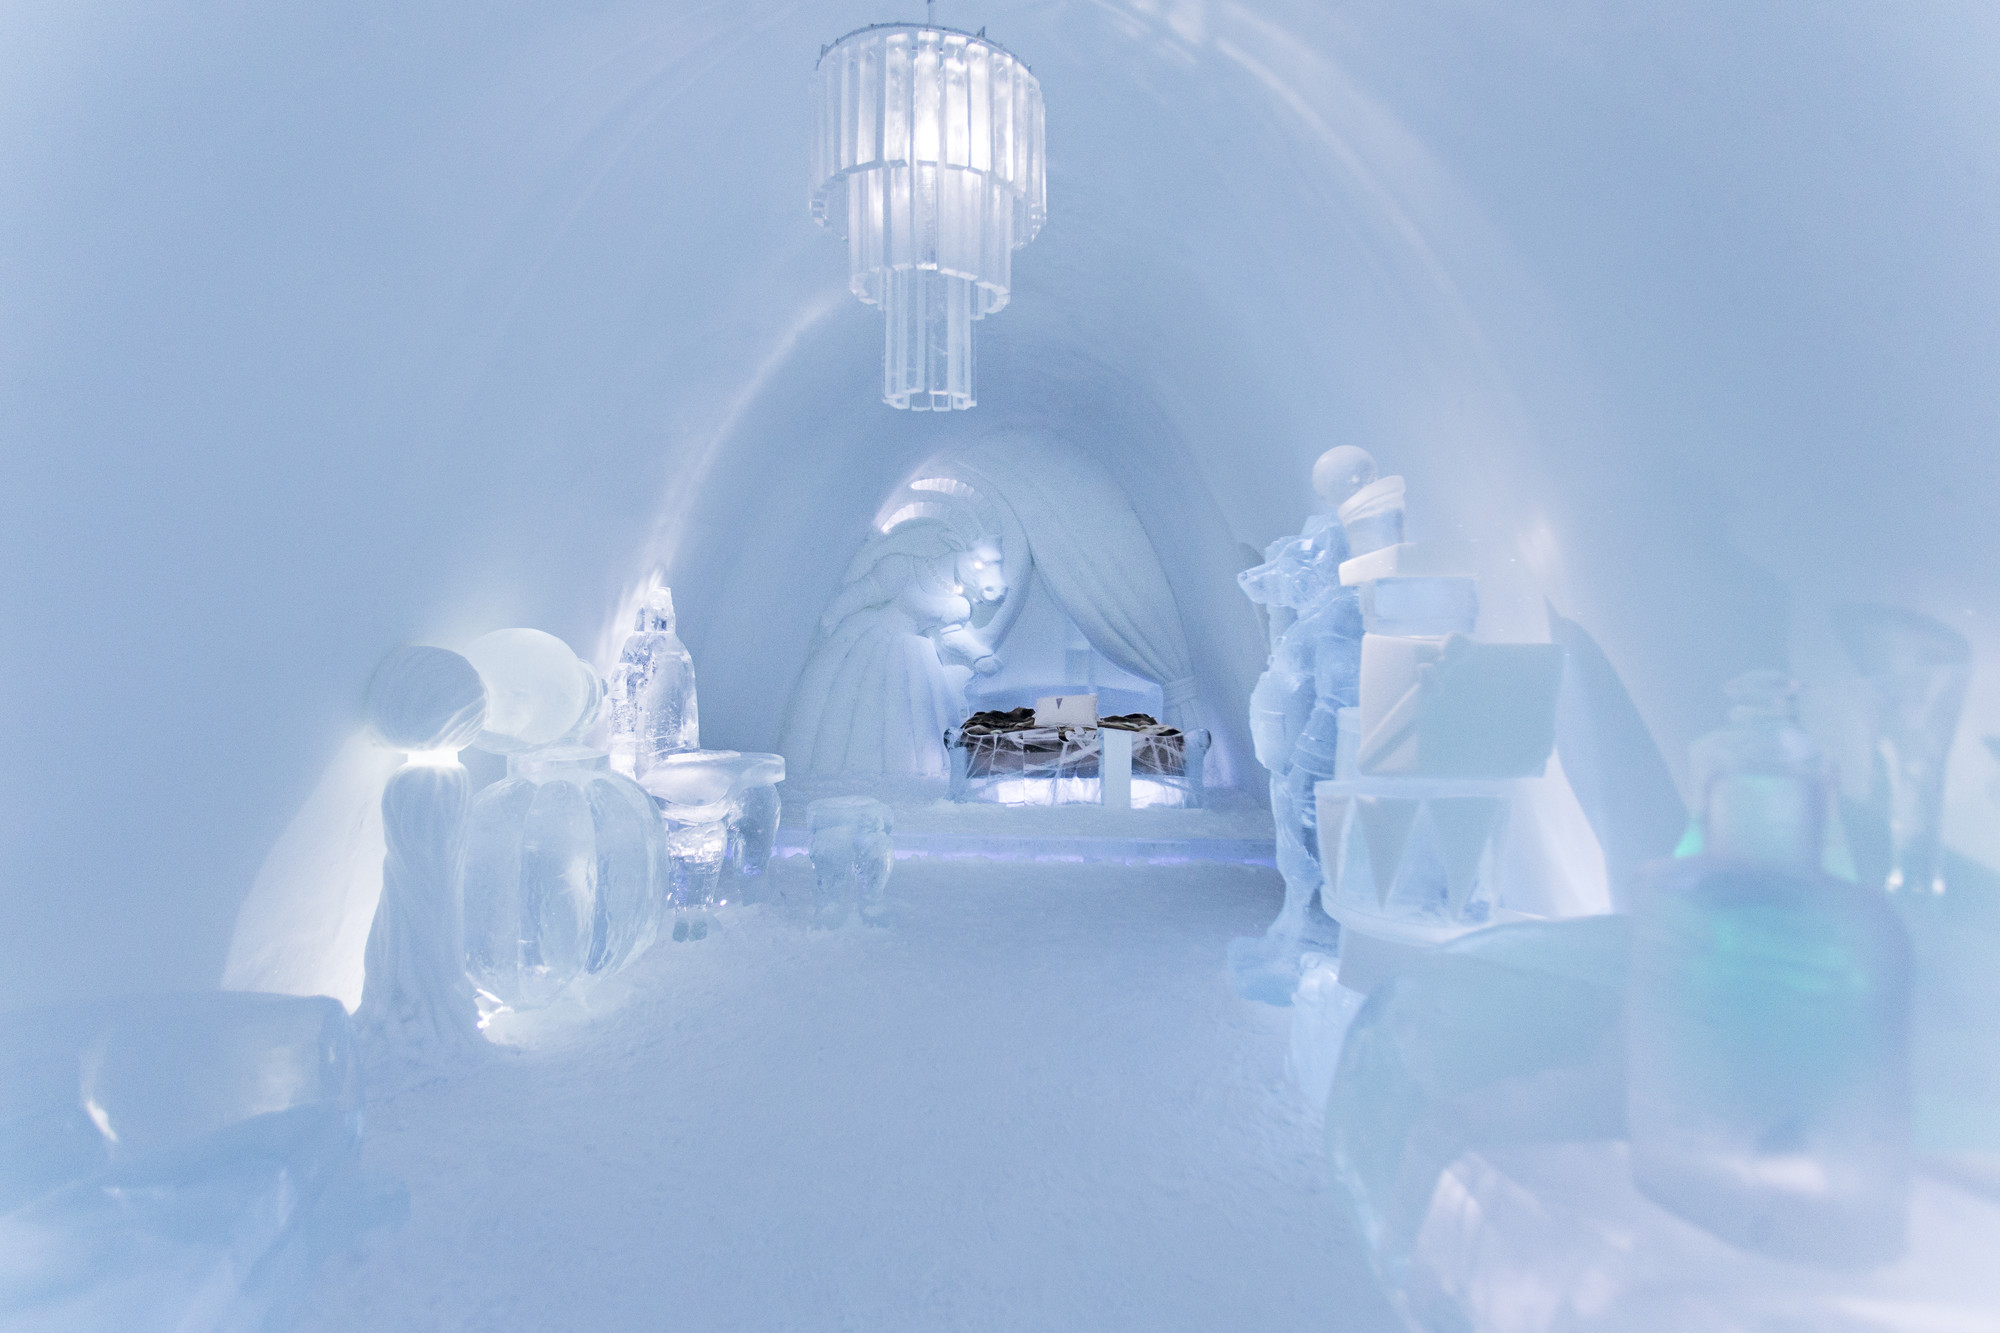 A Place to Chill: Sweden's Ice Hotel